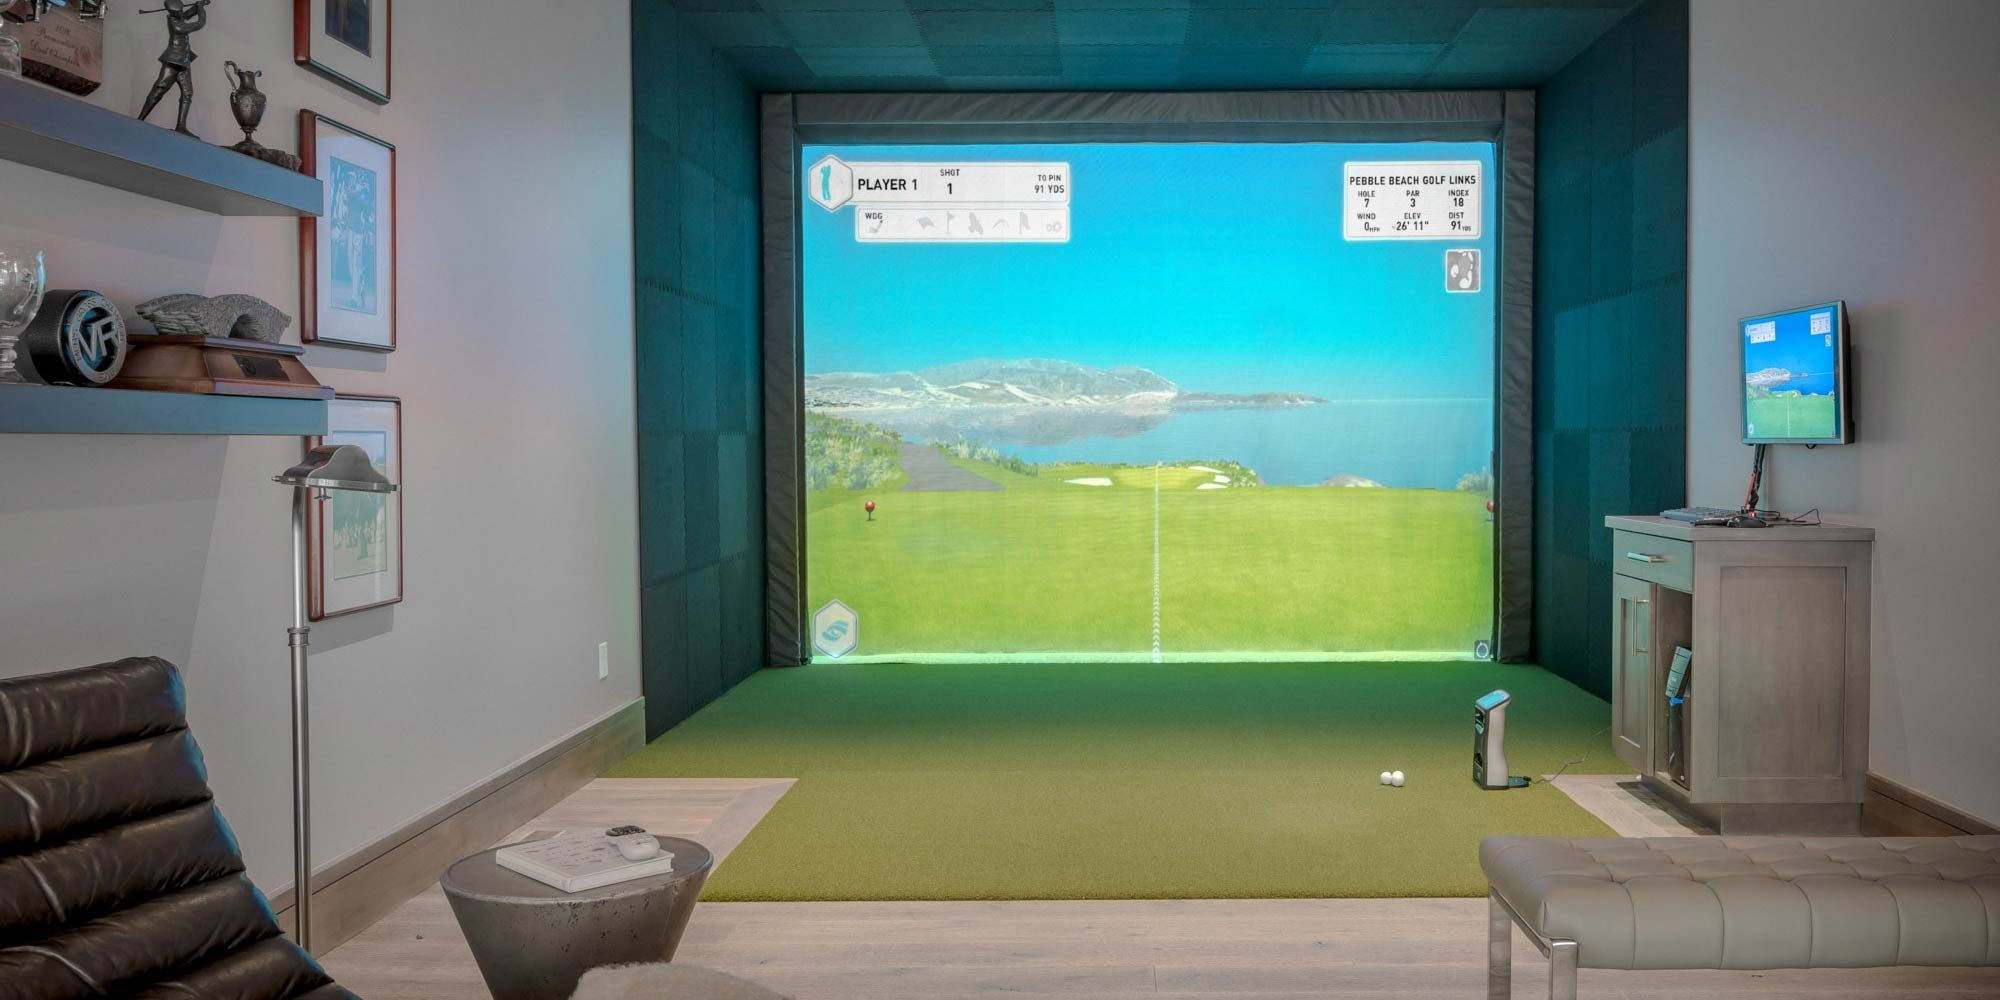 Lighting Control Systems Park City, UT, Indoor living, Home Automation, Smart Home Technology, Utah, Argenta, Golf Simulator